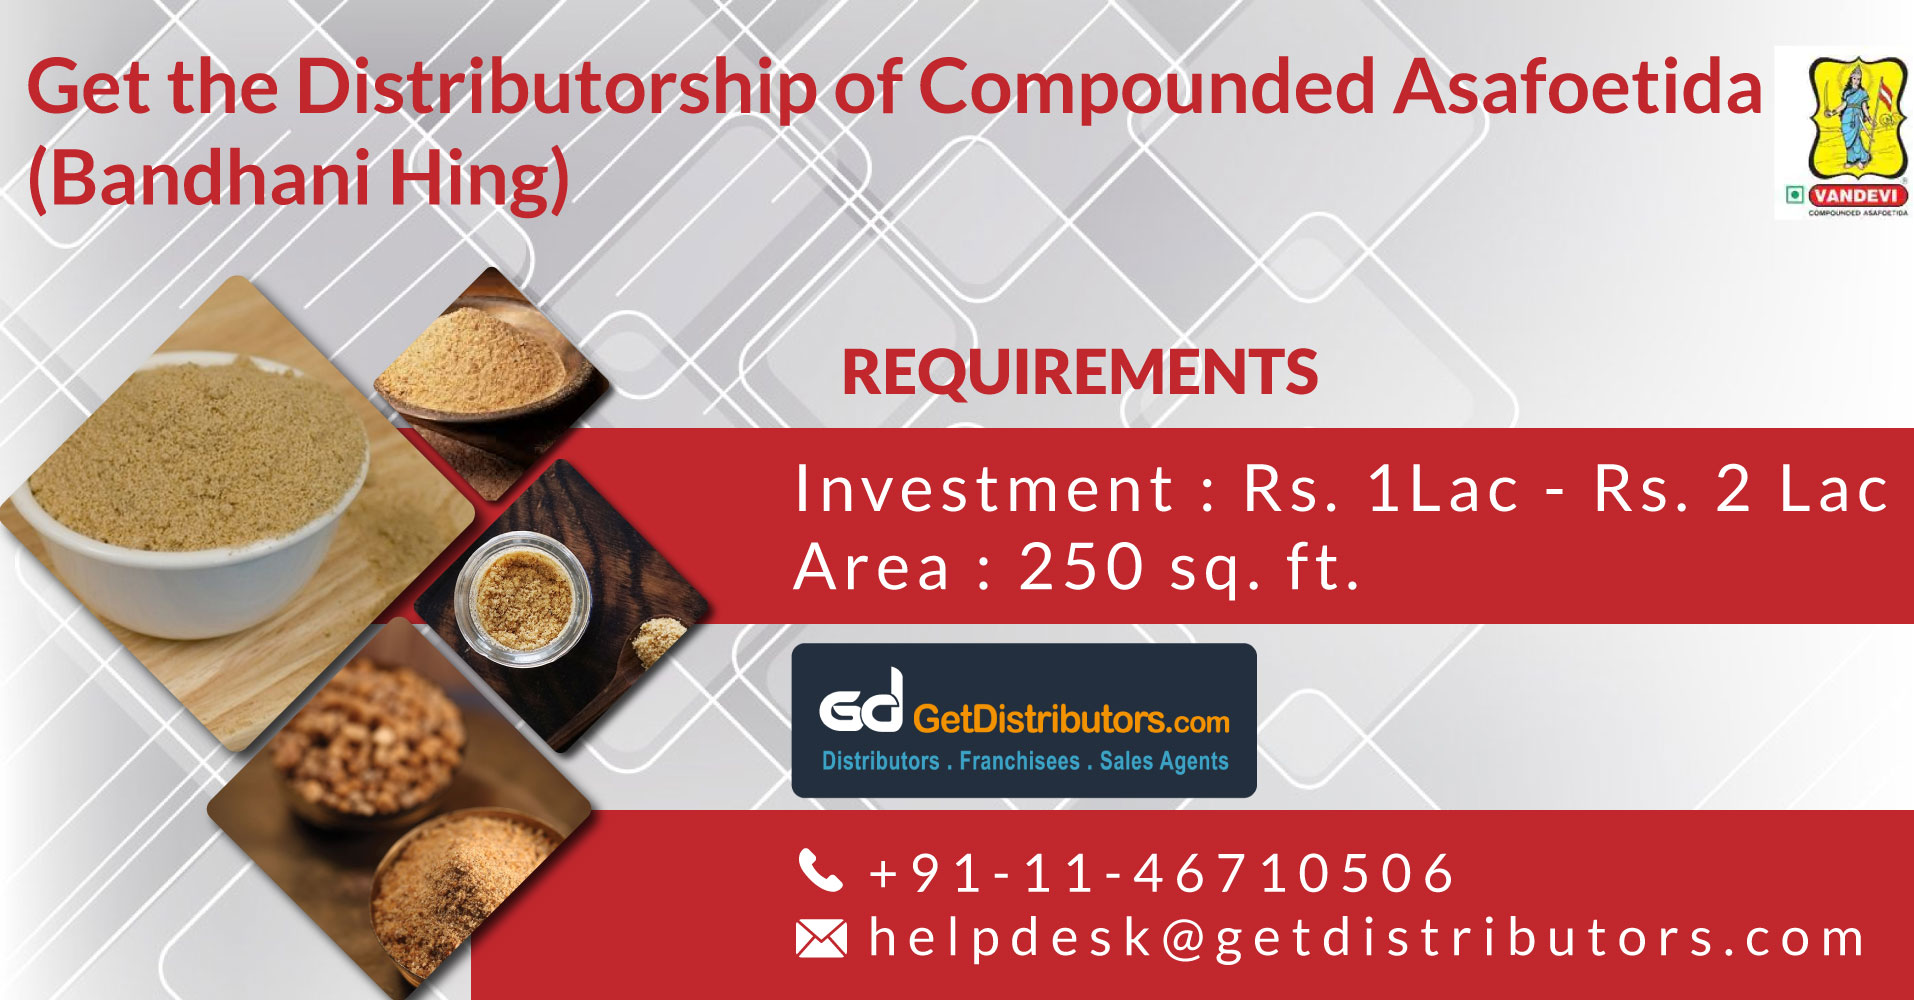 Authentic Compounded Asafoetida (Hing) At Competitive Prices